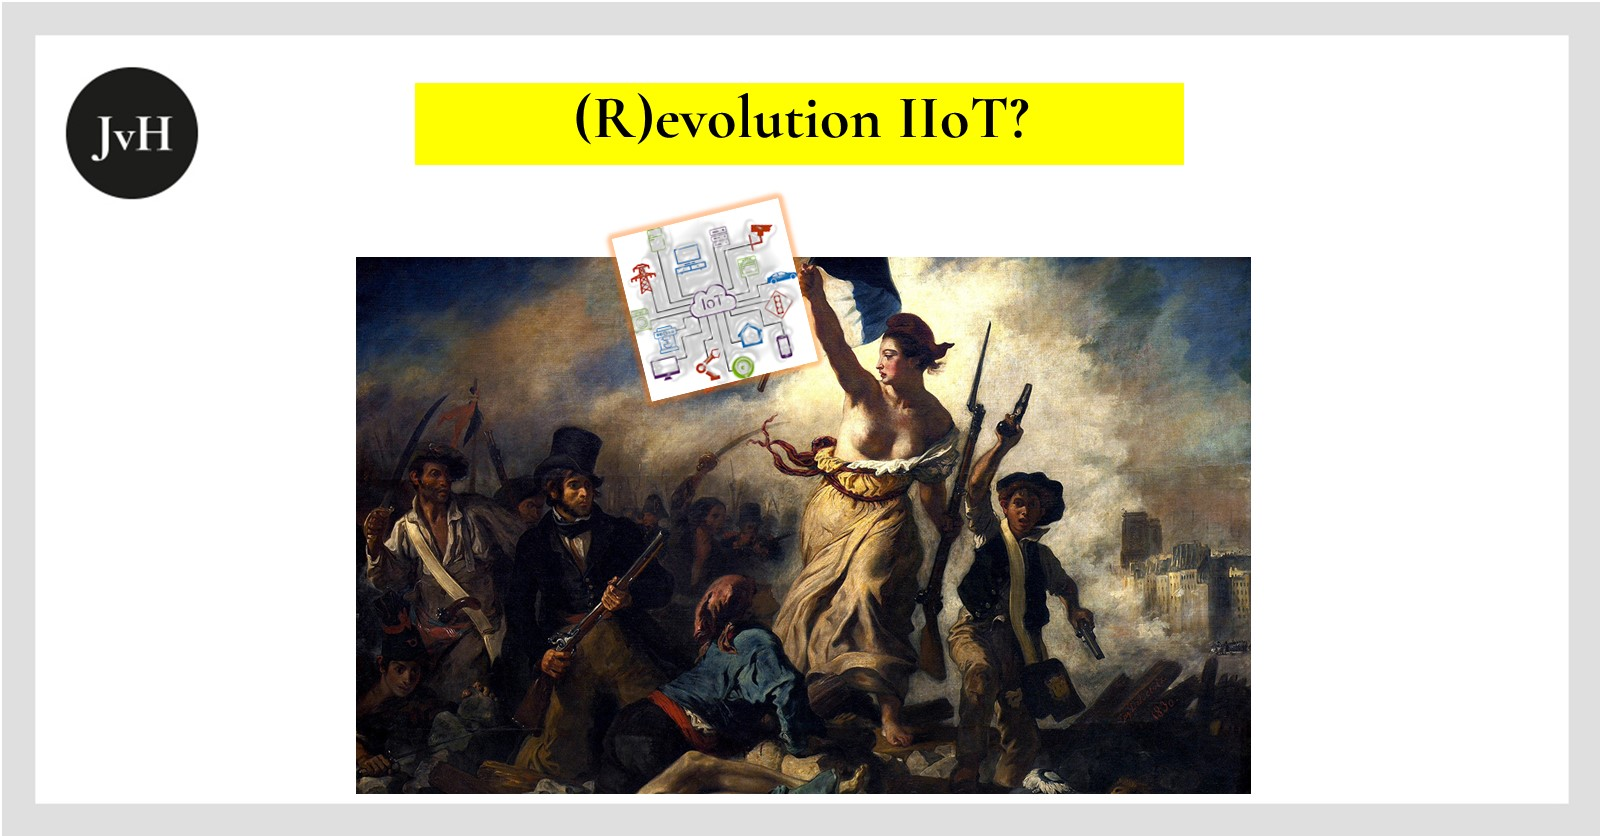 Pic of French Revolution with Pic symbolising IIoT instead of French flag